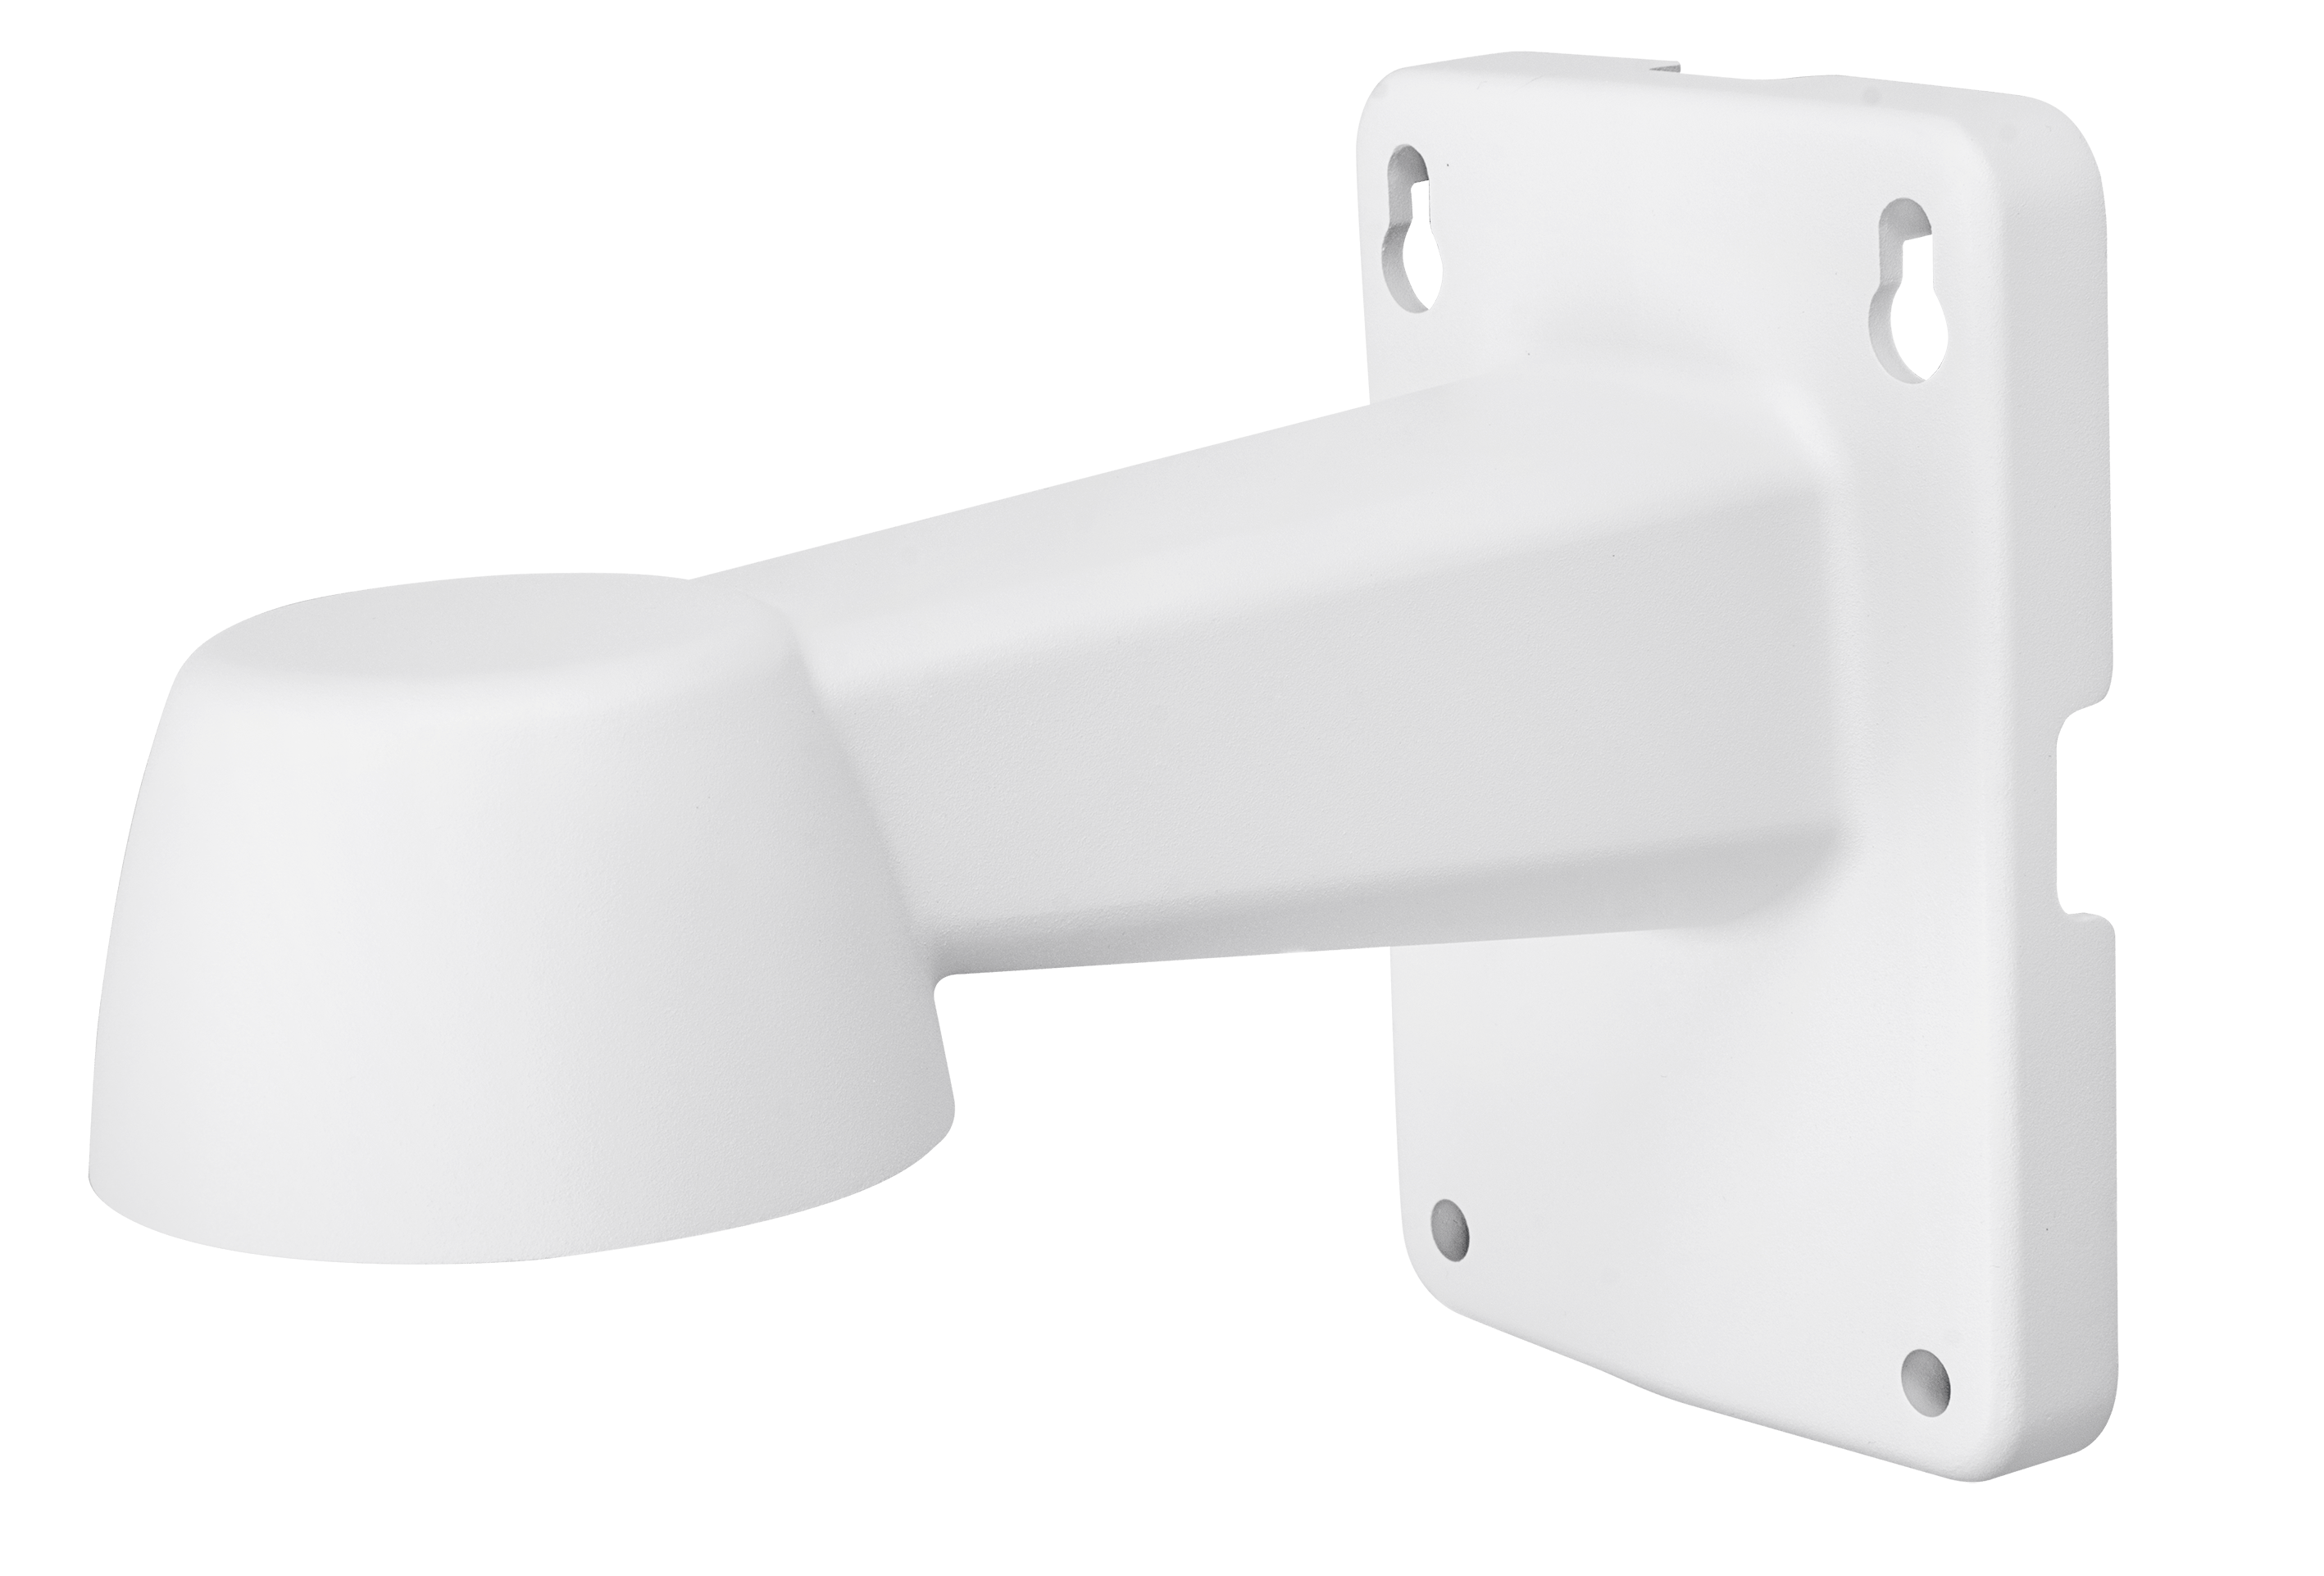 Alca Distribuidora - Wall Mount Bracket | Modelo AM-21C